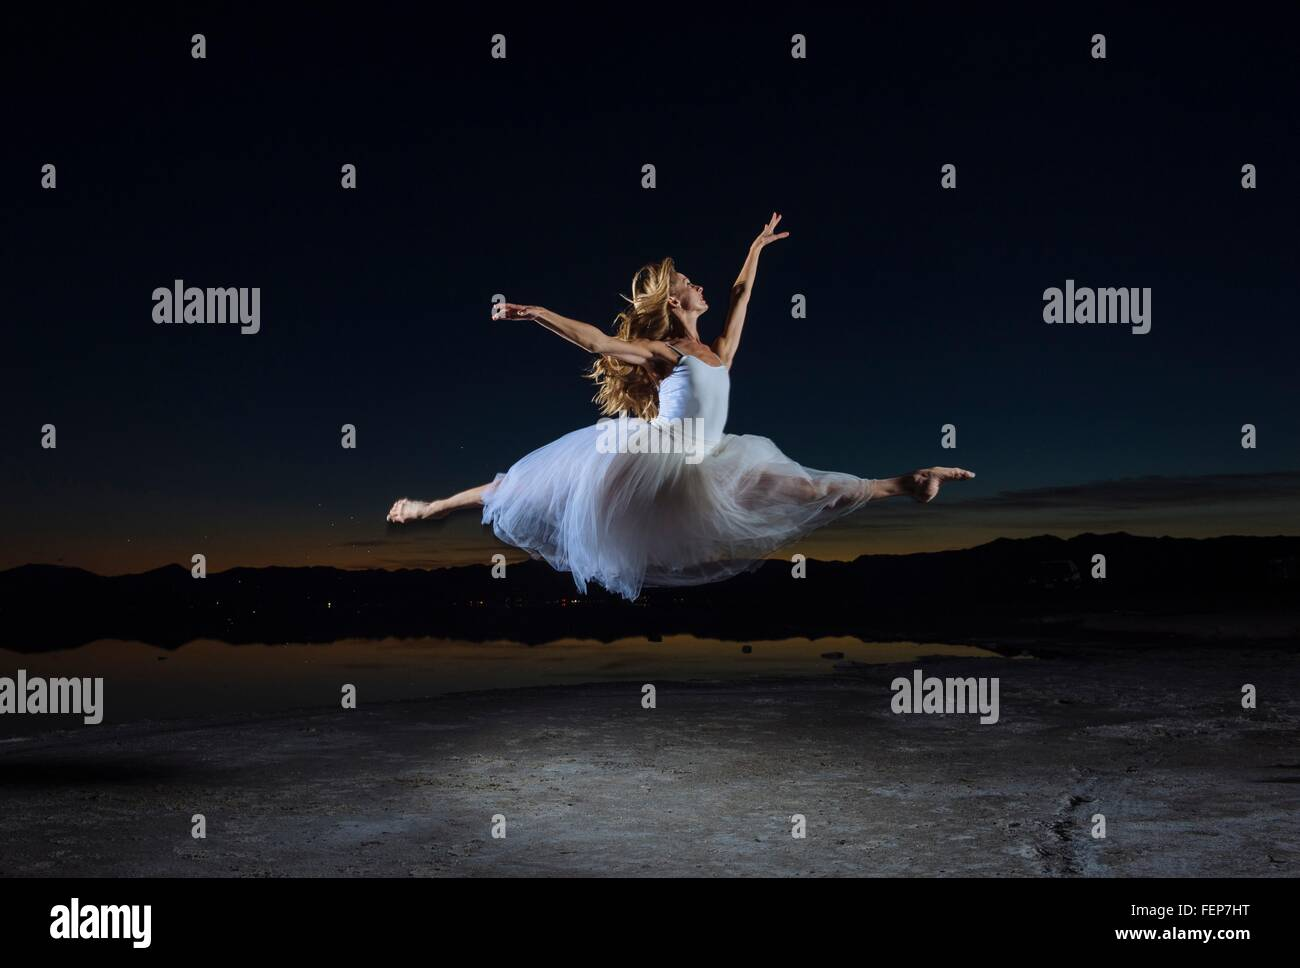 Young female ballet dancer leaping over Bonneville Salt Flats at night, Utah, USA - Stock Image